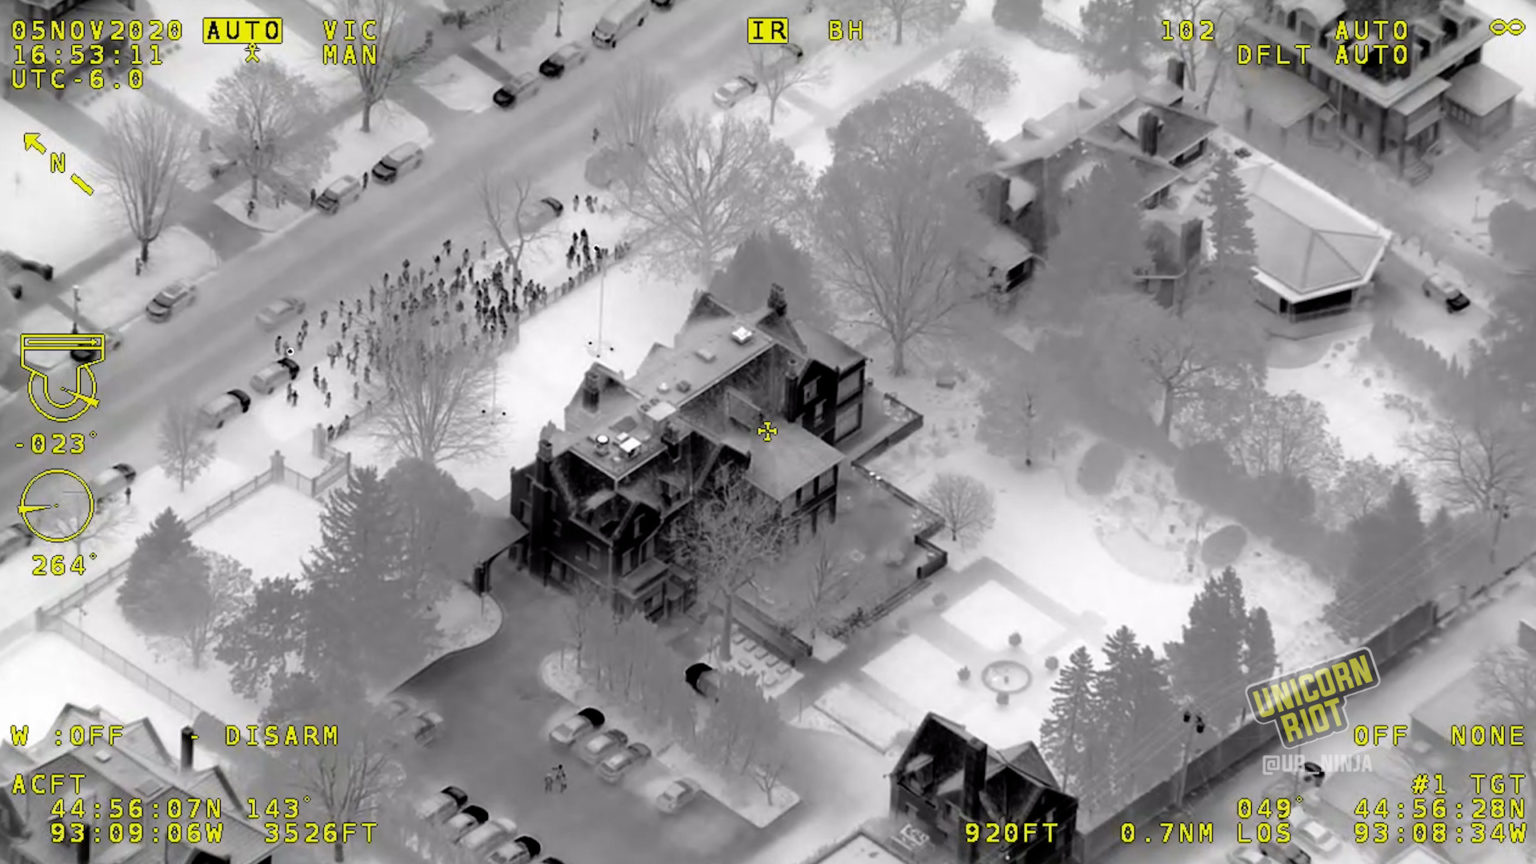 police forces use military technology to monitor dissent